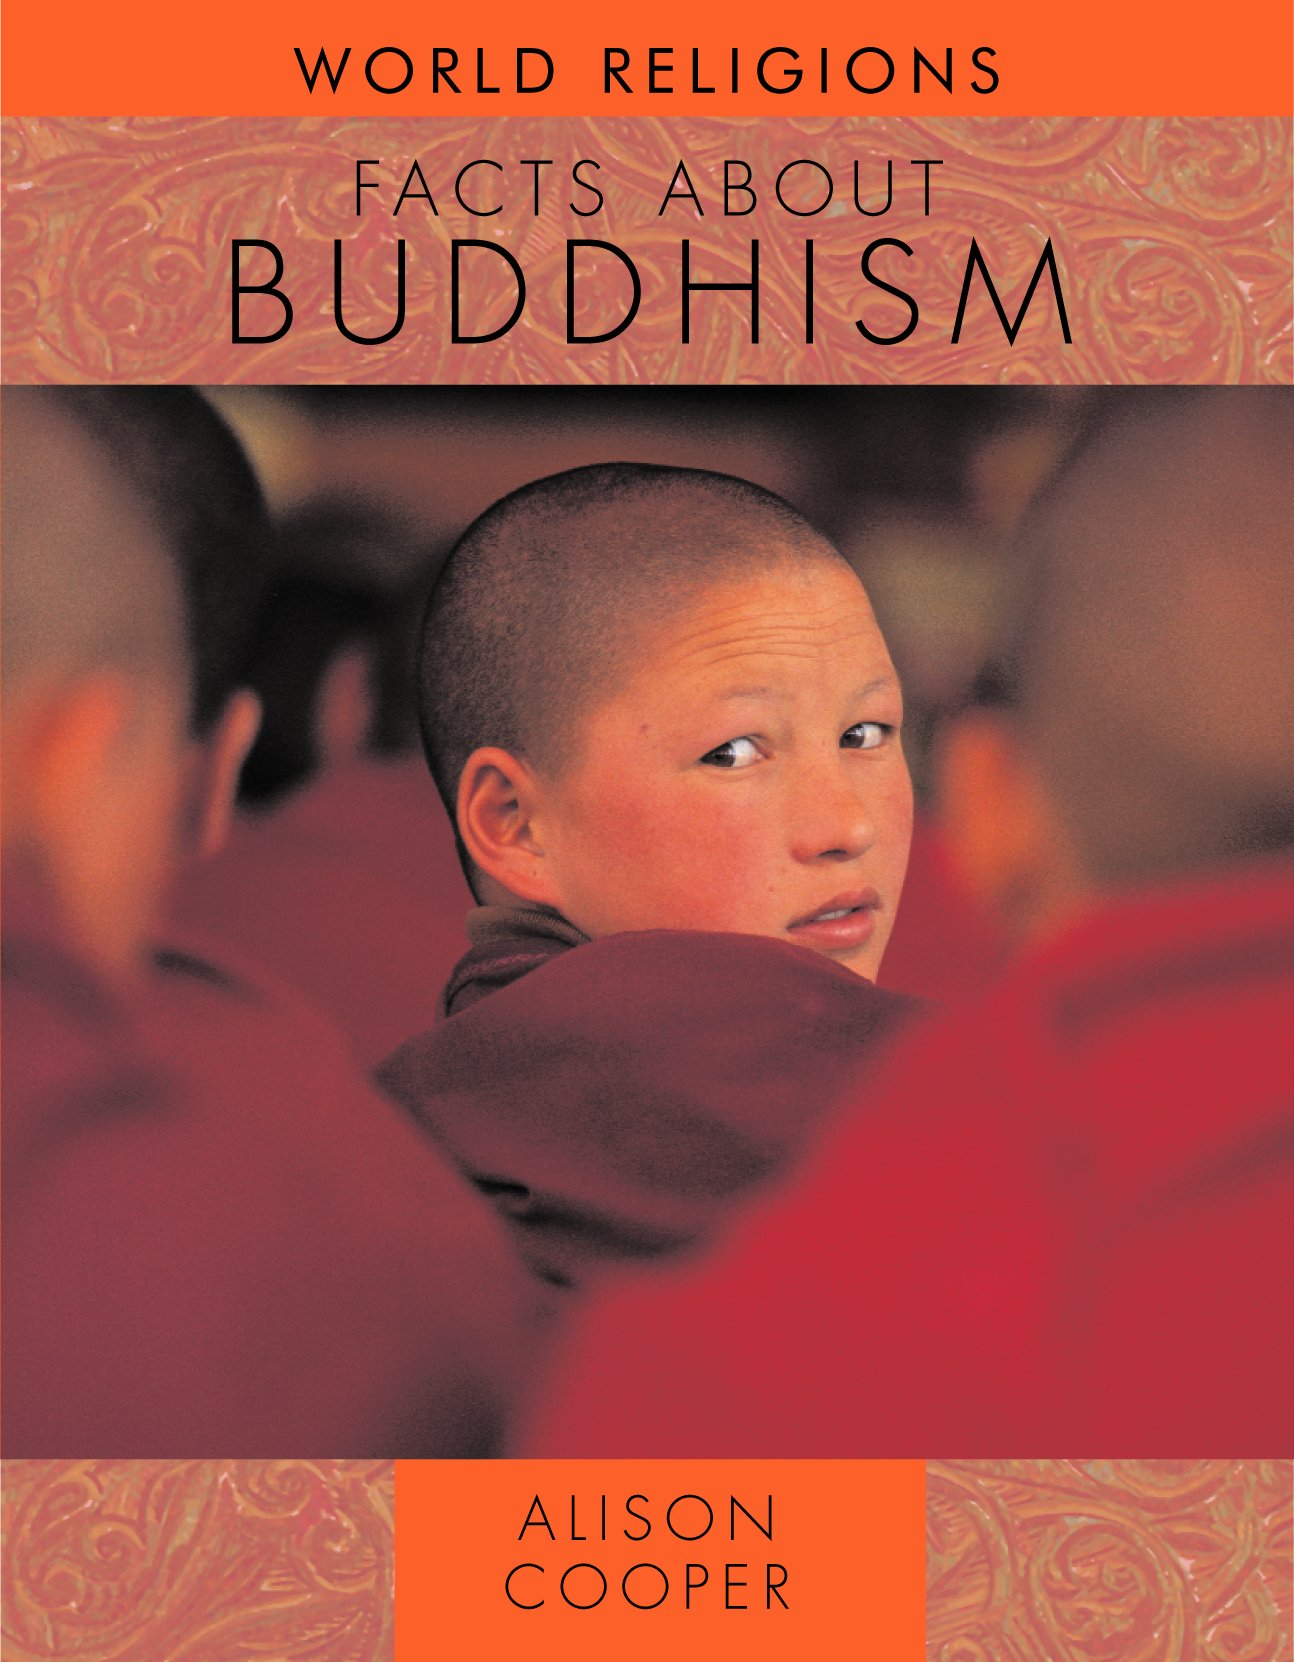 Facts About Buddhism (World Religions) by Brand: Rosen Central (Image #1)